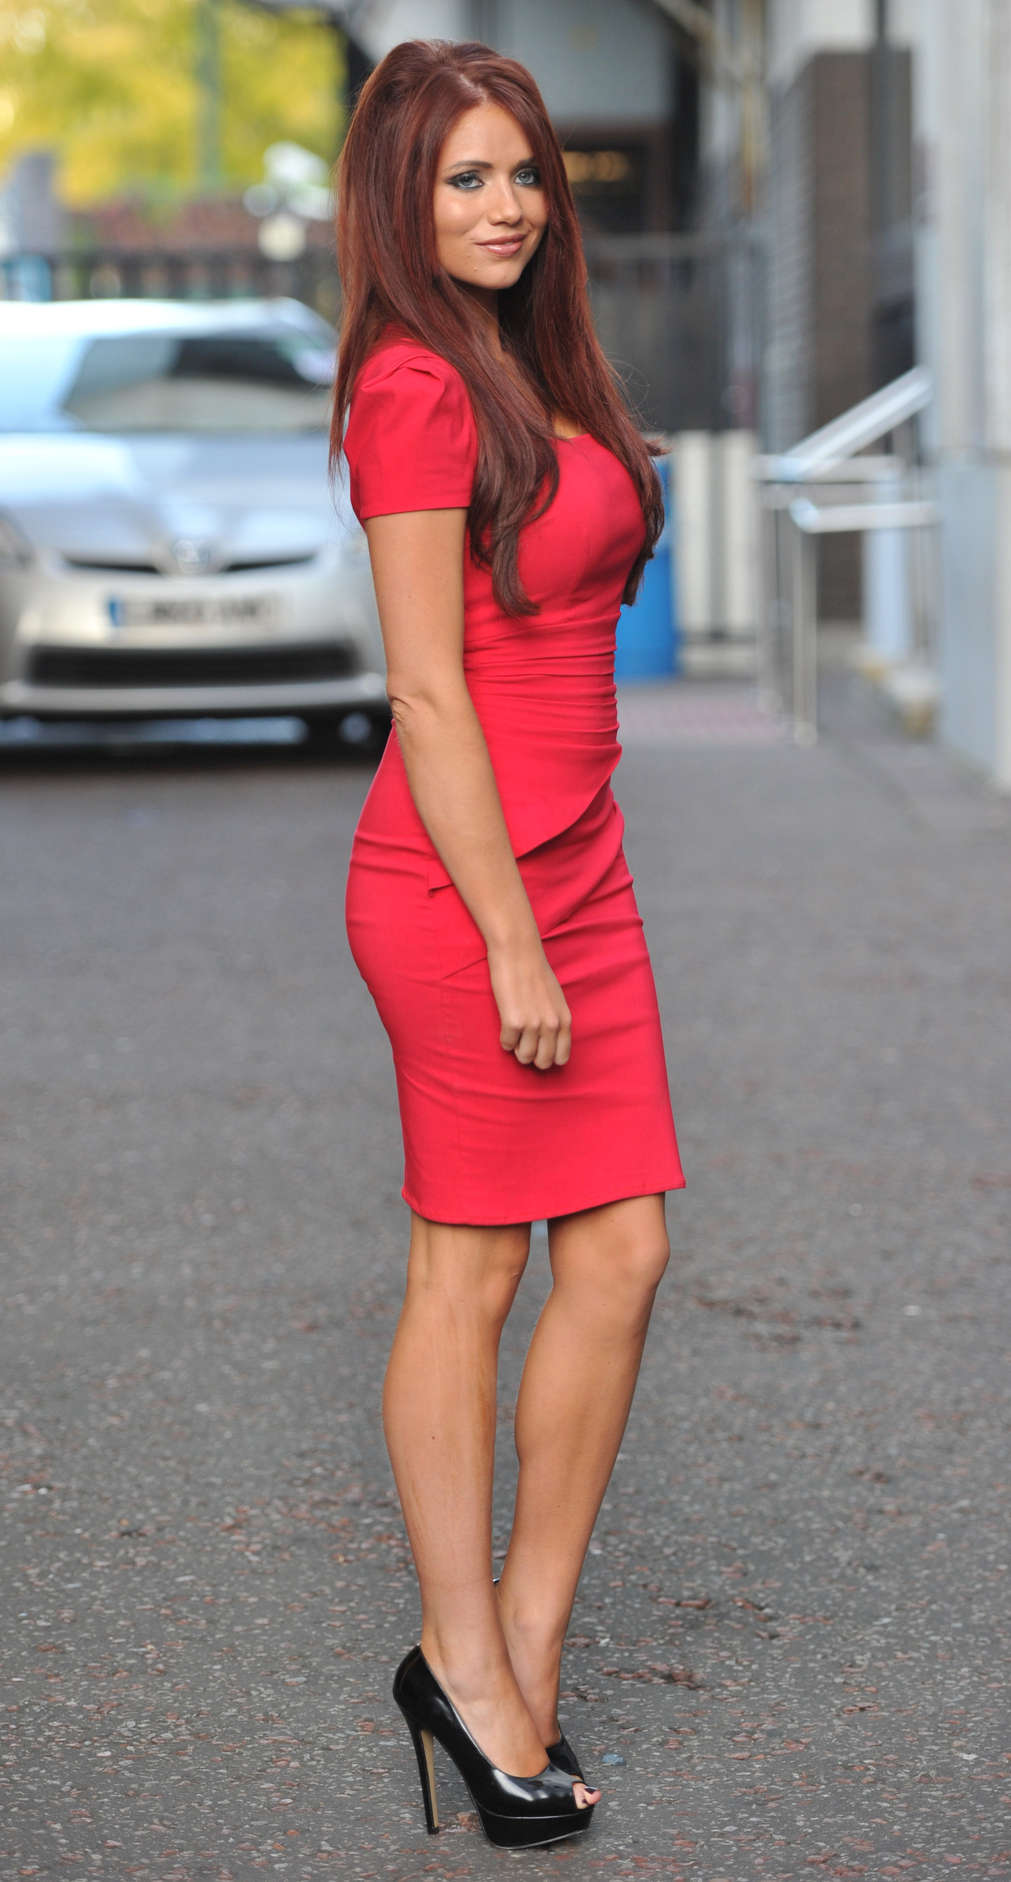 58ce35adbe1 Amy Childs Hot In Red Dress in London-15 – GotCeleb